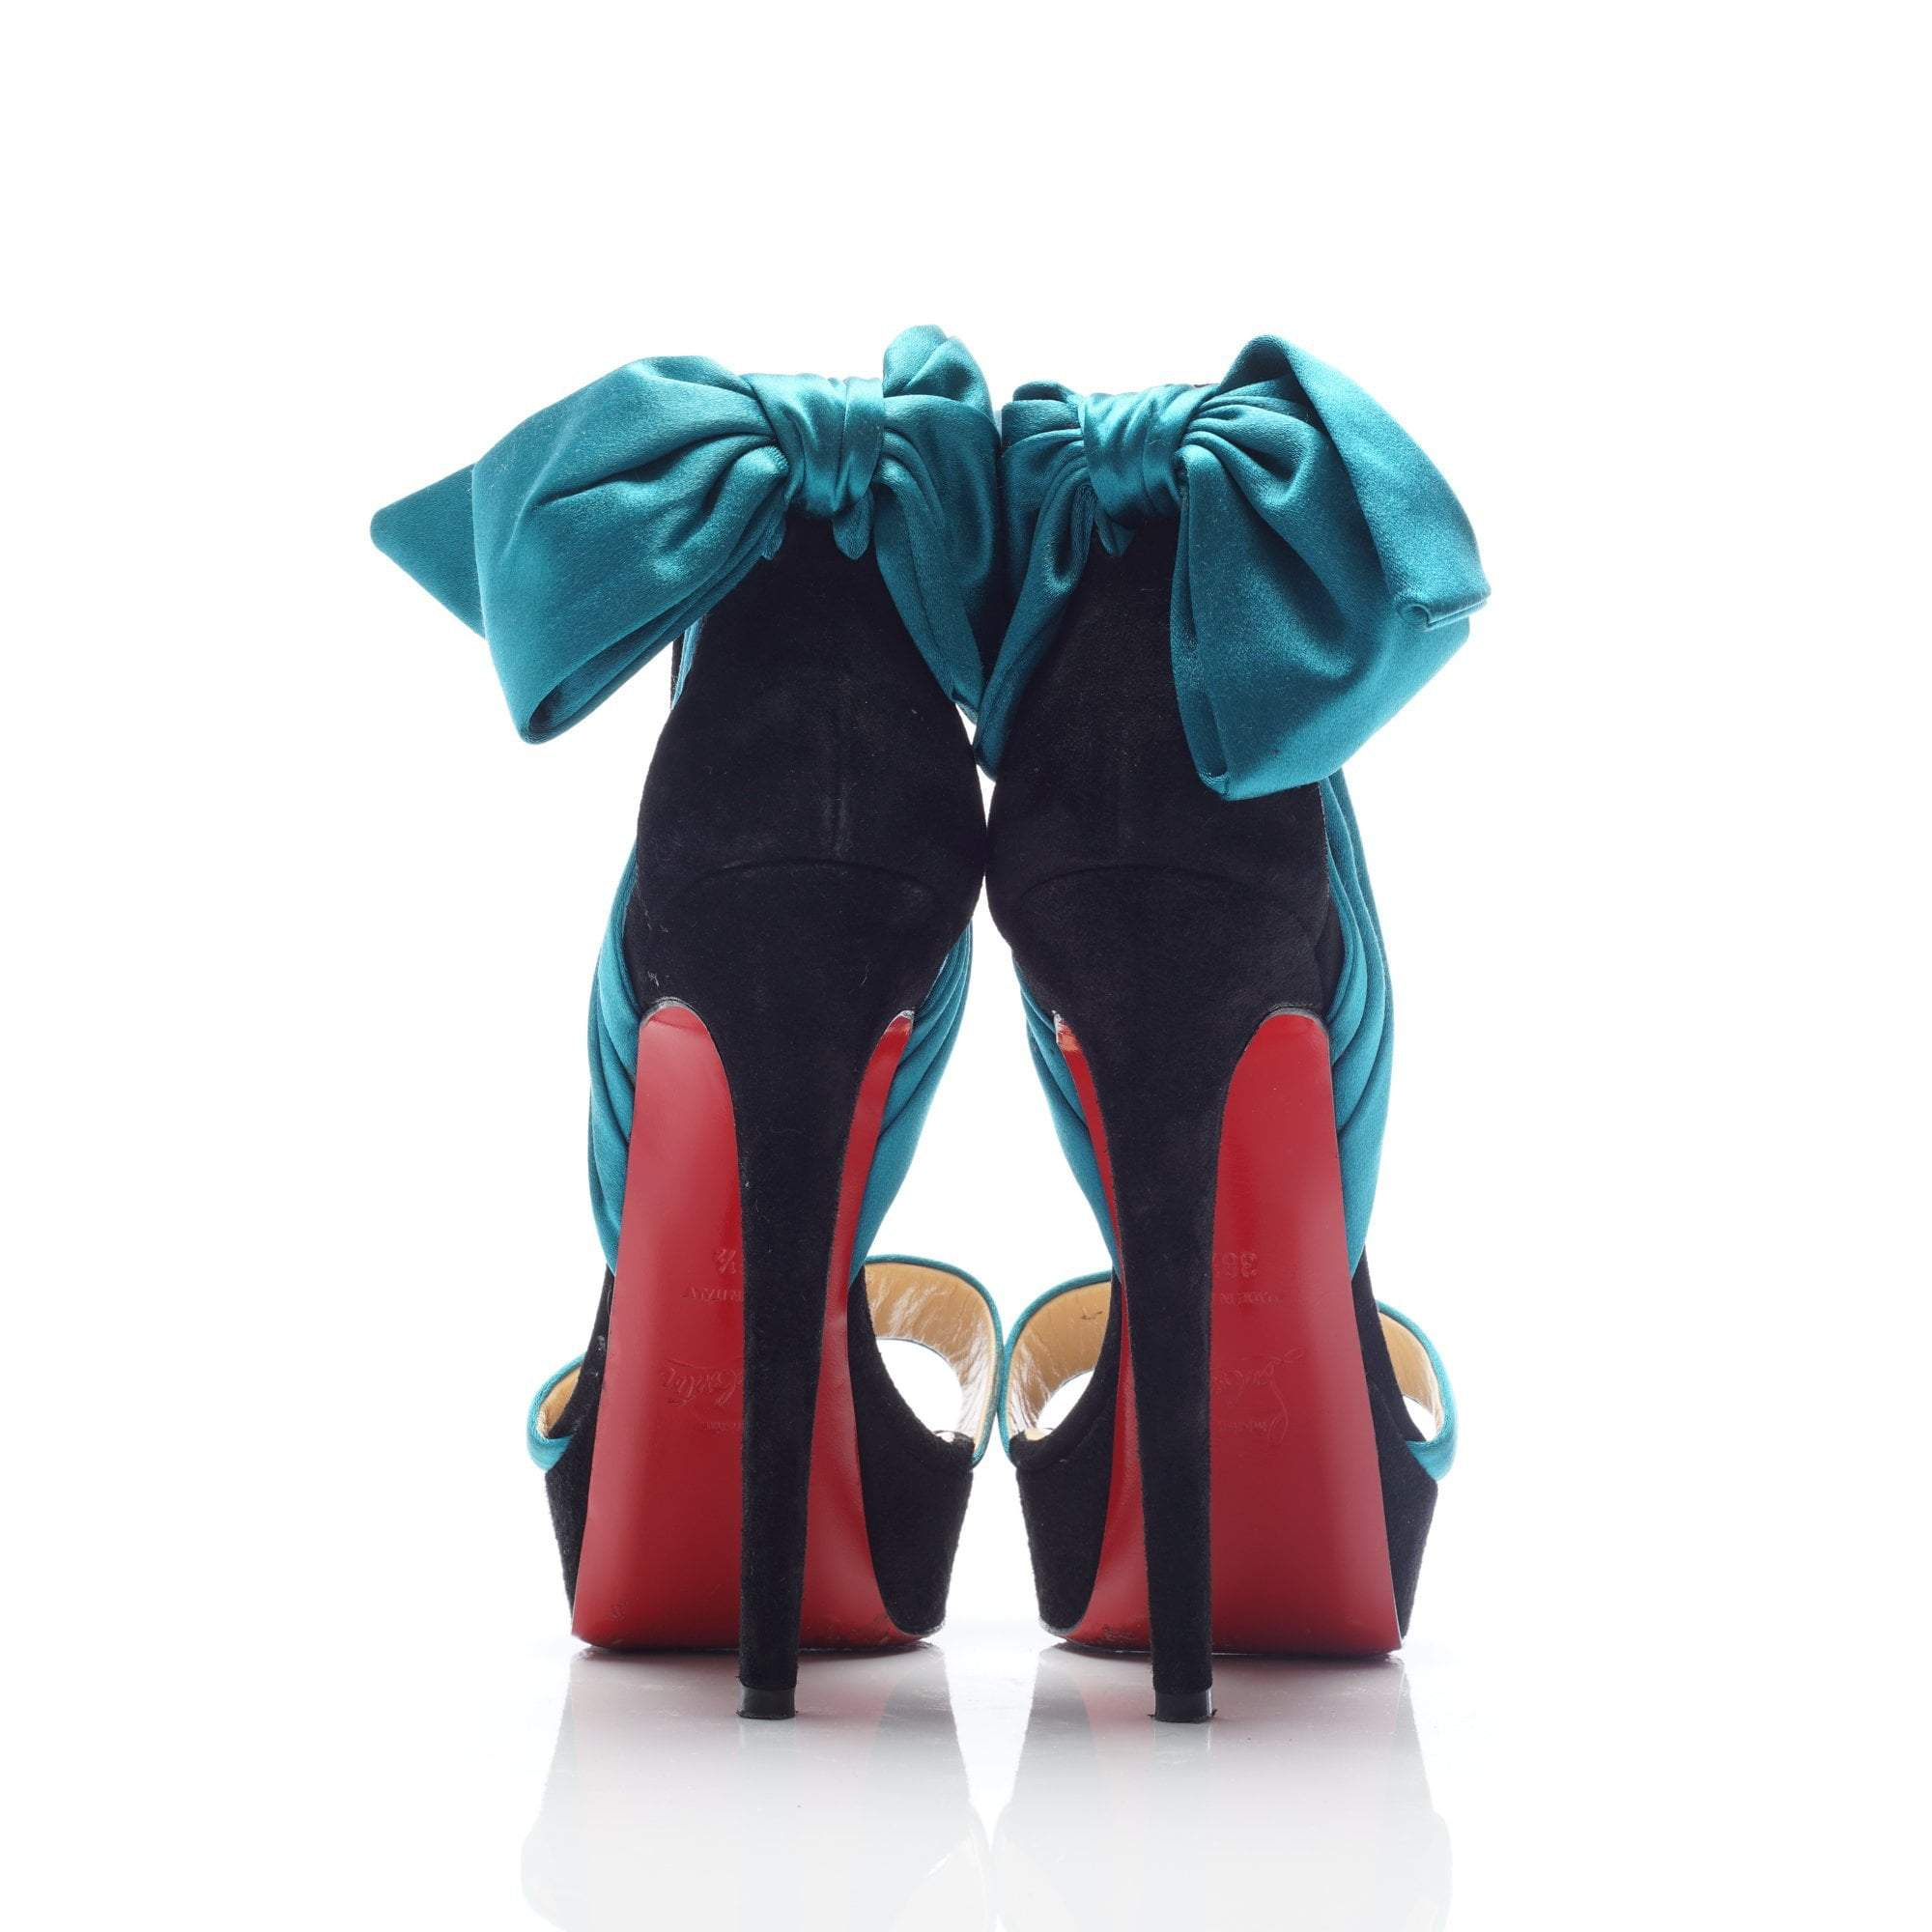 Christian Louboutin Peacock Black Vampanodo Satin Bow Pumps